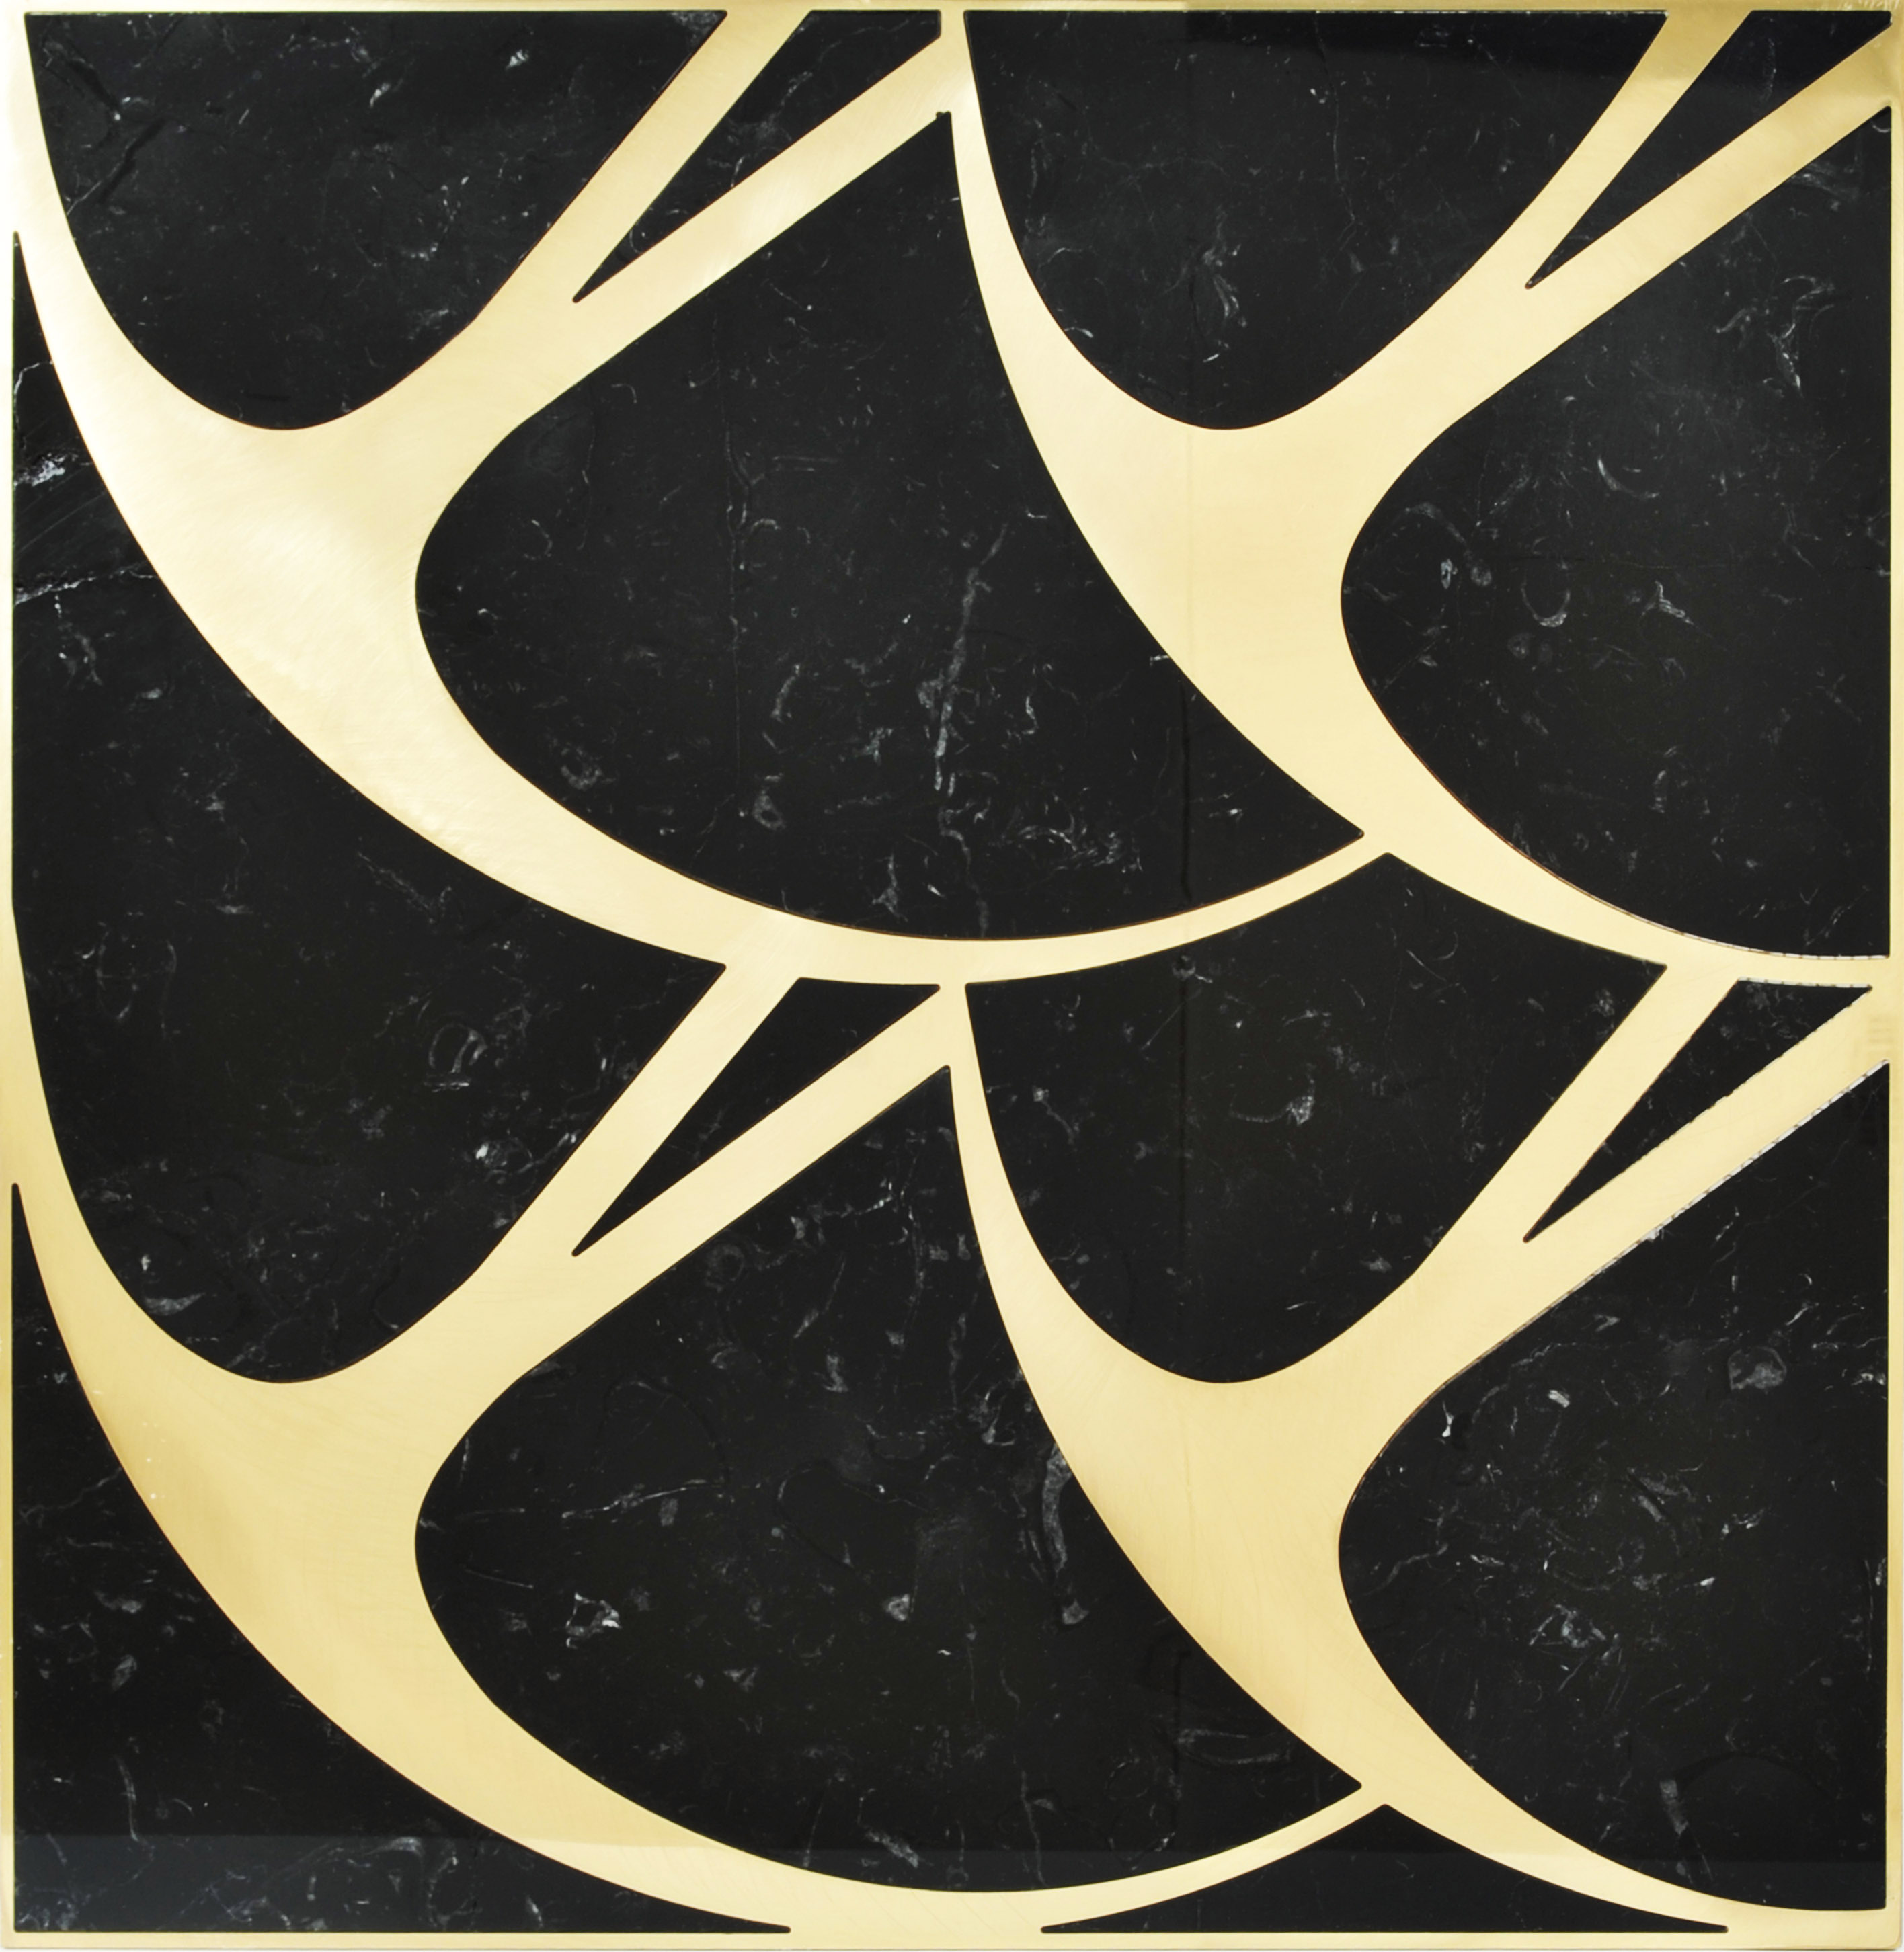 Pattern Black & Gold - Ma.C.S. combines artisan crafted production with industrial processing powered by numerical control machines. This is demonstrated by the new marble inlay covering collection. The research aims to integrate the classical idea of marble inlay (combined in some cases with other materials such as wood and metal), with shapes, compositions and innovative, charming designs. All of that is rigorously made in Italy.  The 2016 collection is characterized by geometrical serial successions, similar to nature inspired paintings. Delicate strokes of color, a careful choice of materials and cleverly designed decorations create a striking spatiality, blurring the line between the two-dimensional and the three-dimensional sphere.  The proposed coverings, both horizontal and vertical ones, are fully customizable in size and colors, according to client needs. | Matter of Stuff